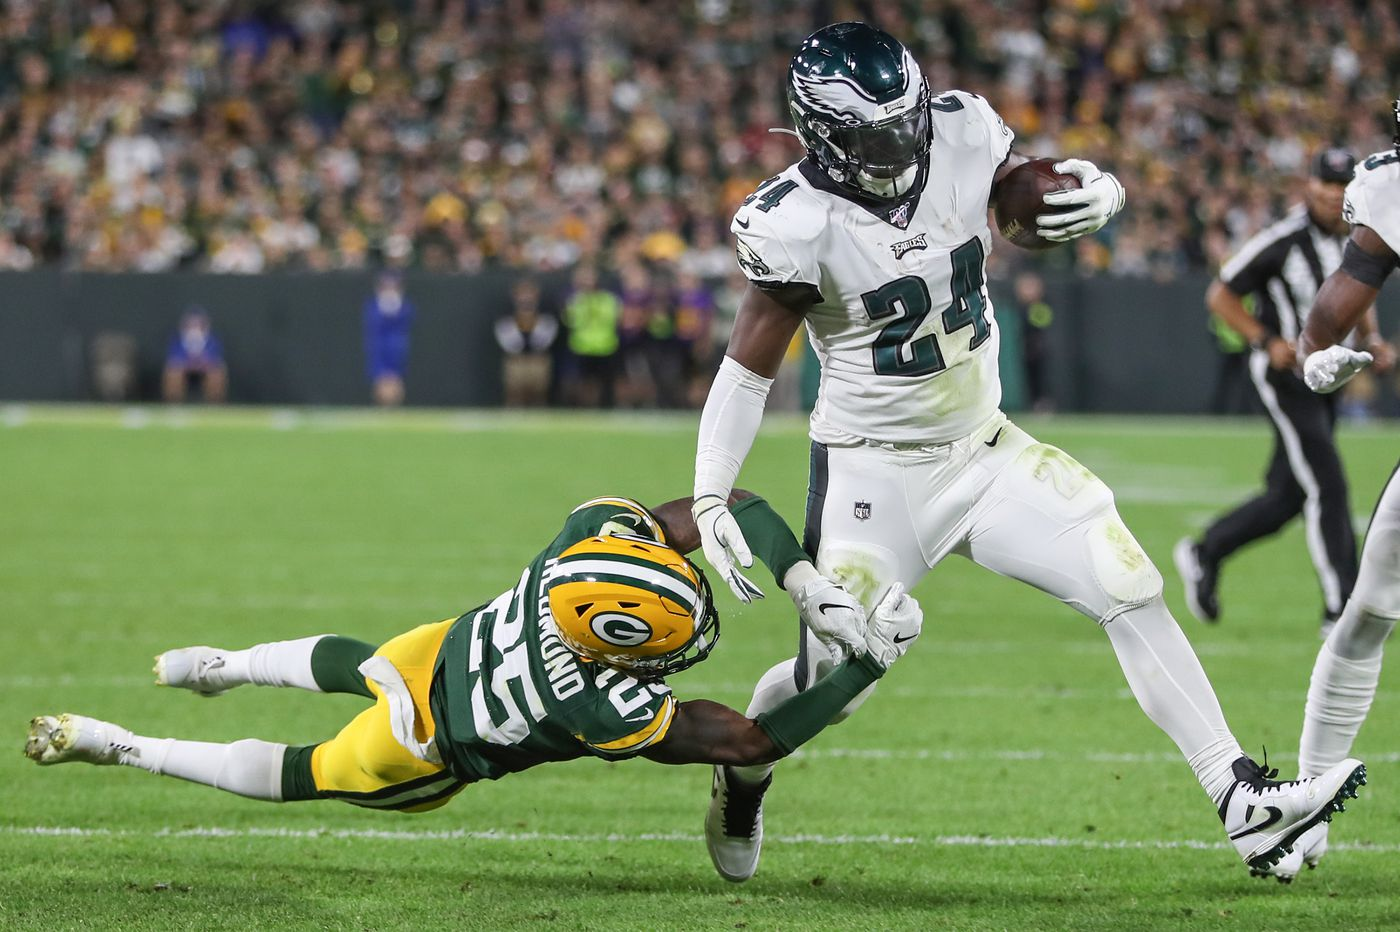 Eagles ground game will face a tougher test from the 0-3 Jets than it did from the Packers